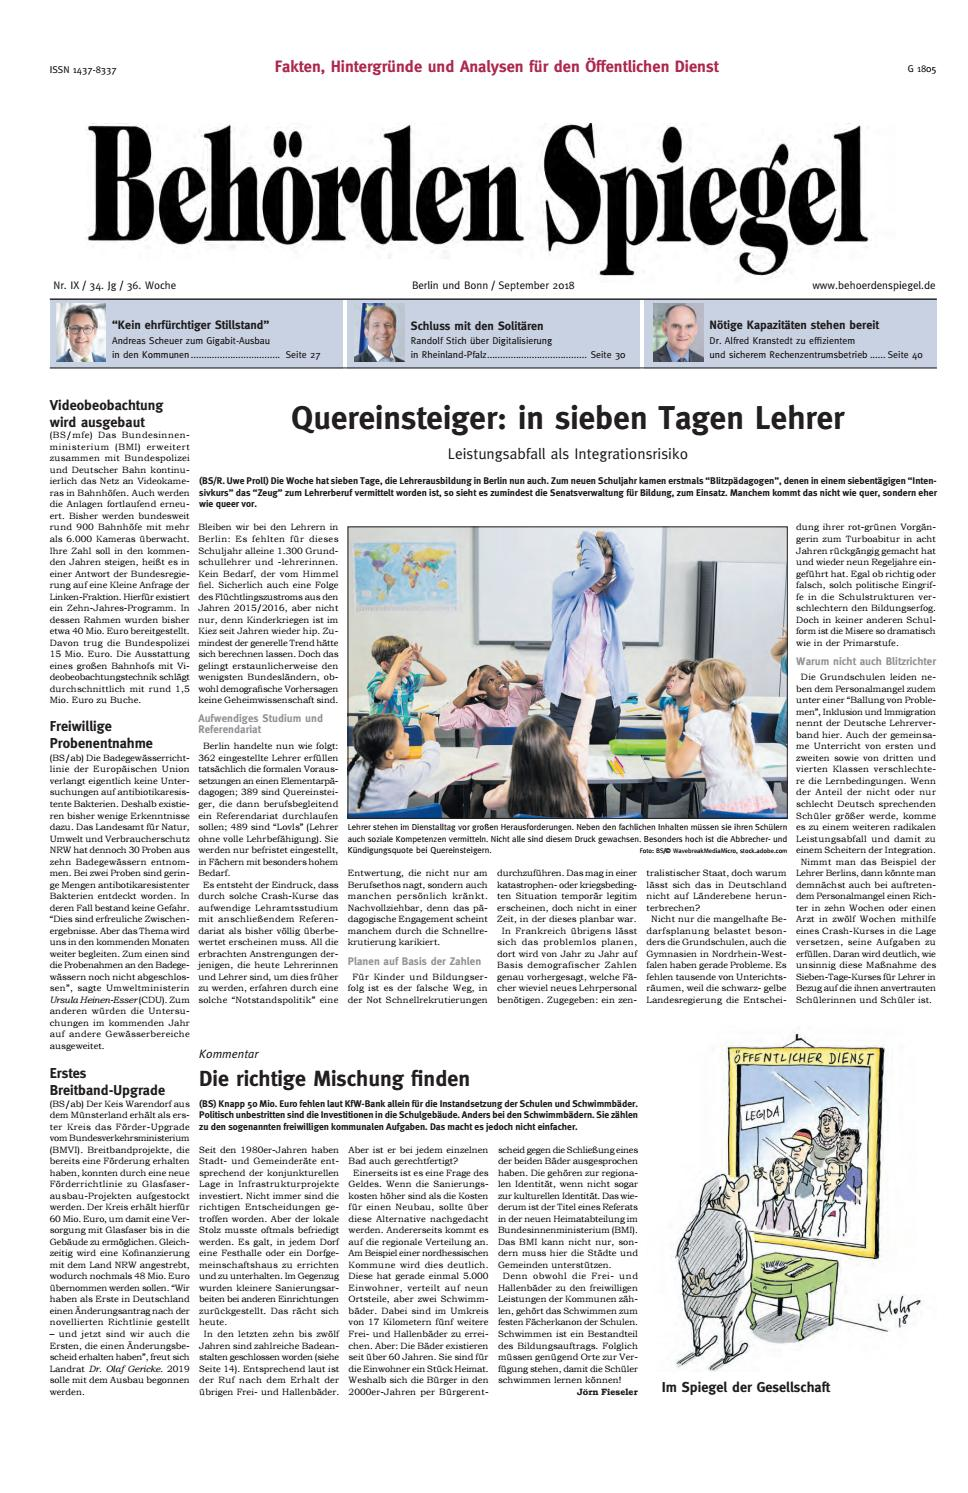 Behörden Spiegel September 2018 by propress - issuu